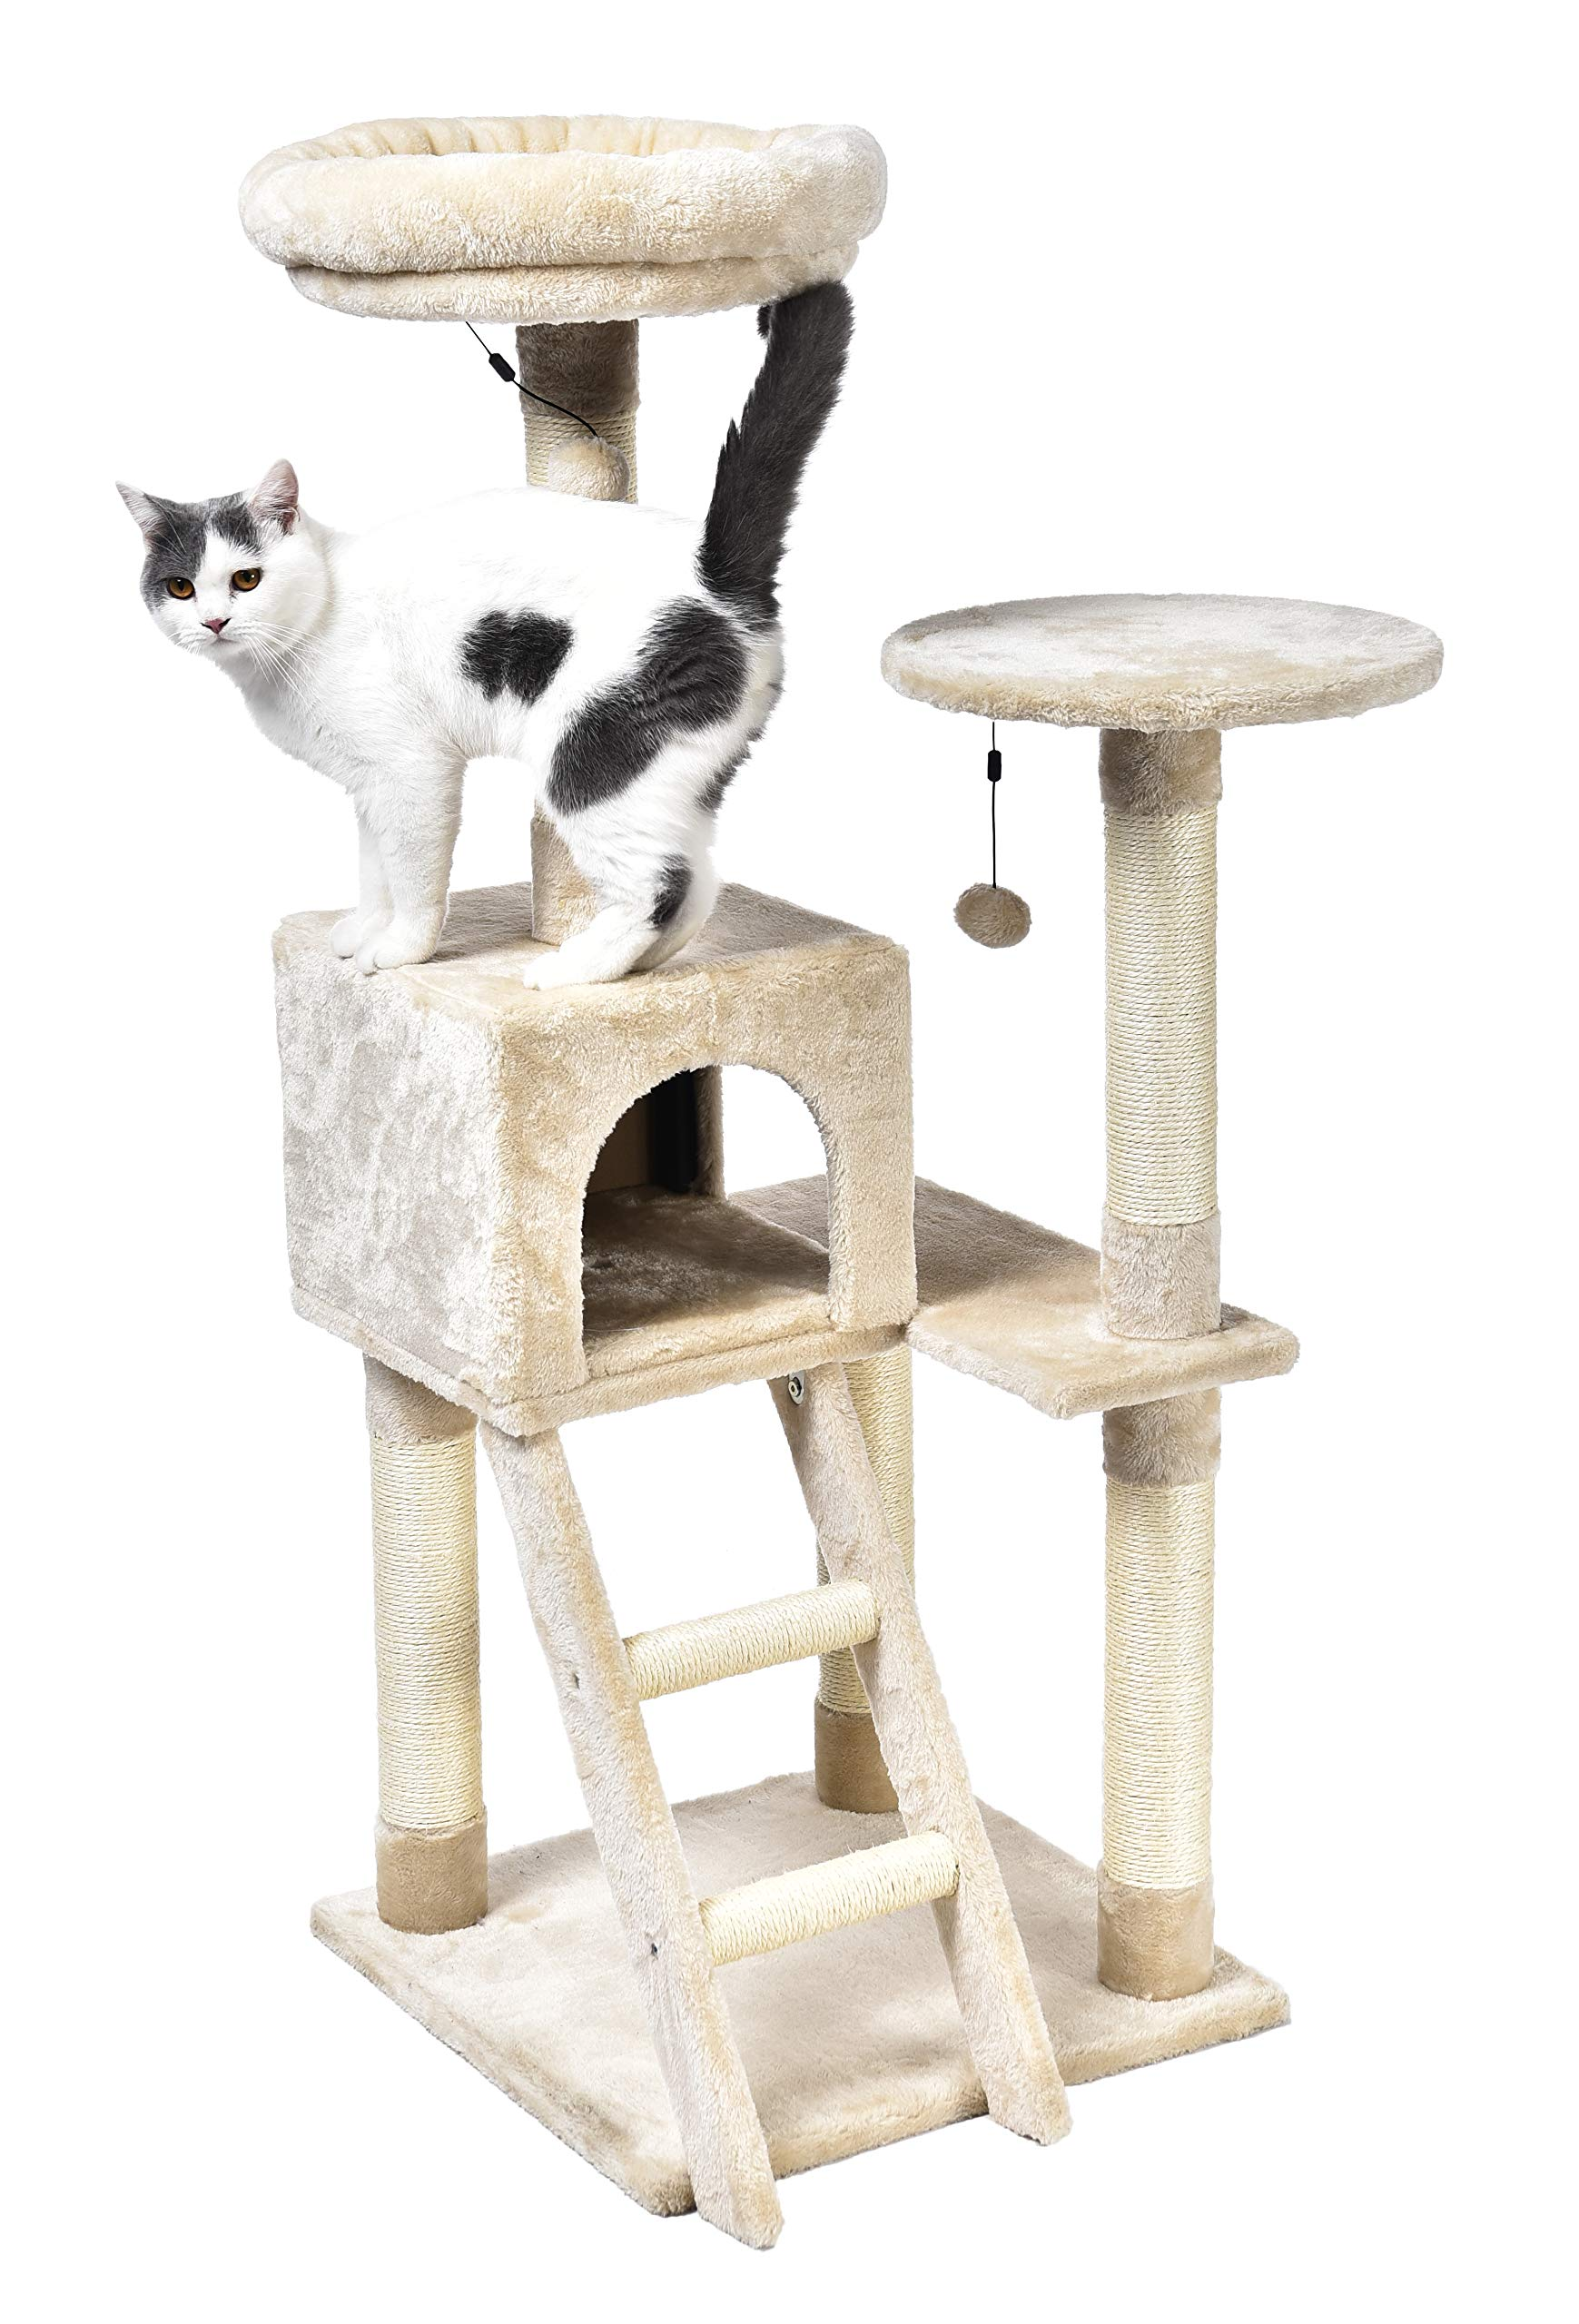 AmazonBasics Extra Large Cat Tree with Cave And Step Ladder - 19 x 50 x 19 Inches, Beige by AmazonBasics